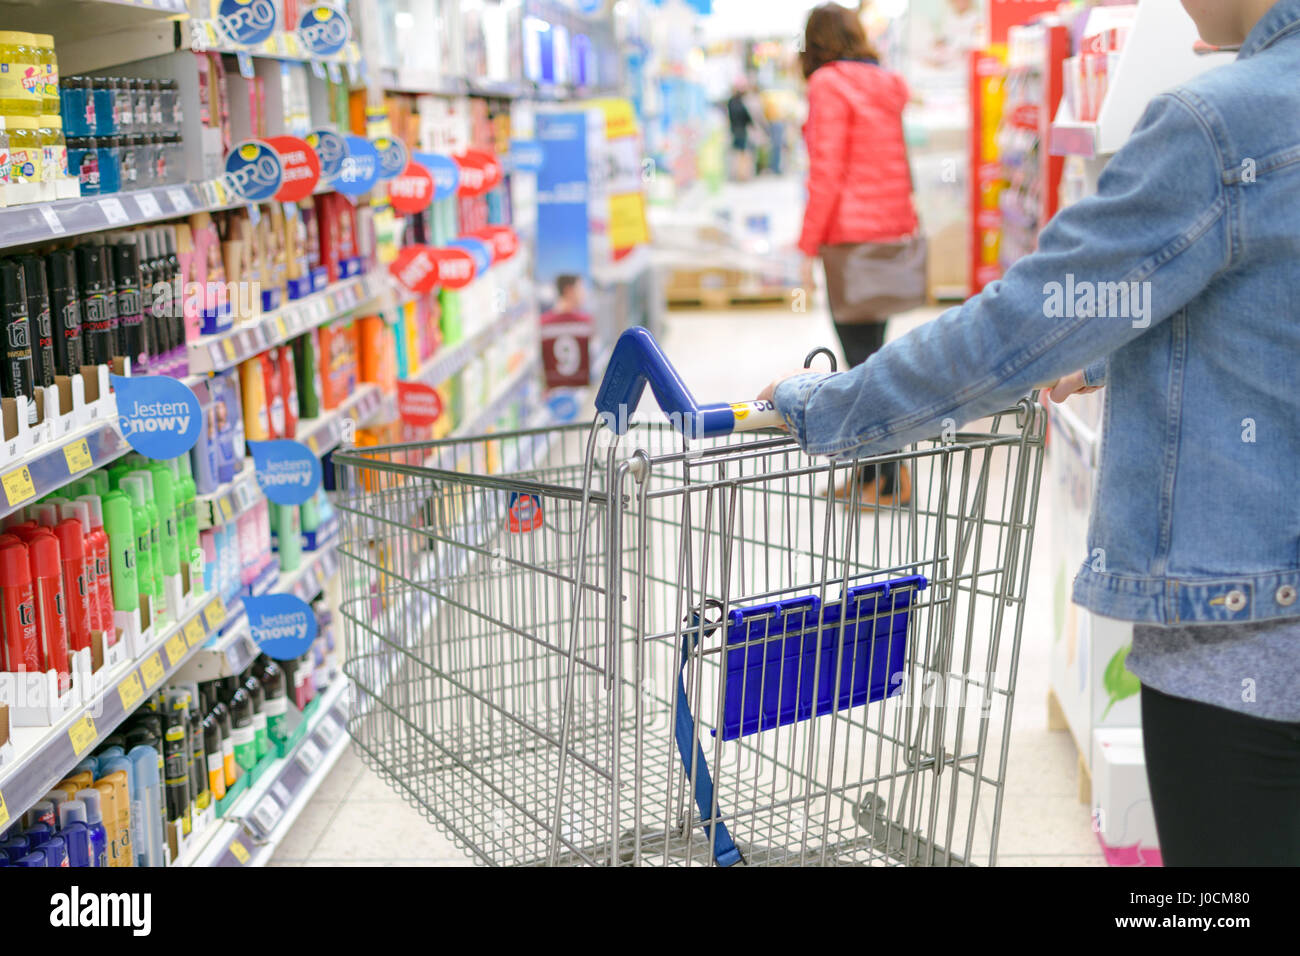 Nowy Sacz, Poland - March 29, 2017: Young woman pushing shopping cart through front of aisle with a variety of personal - Stock Image